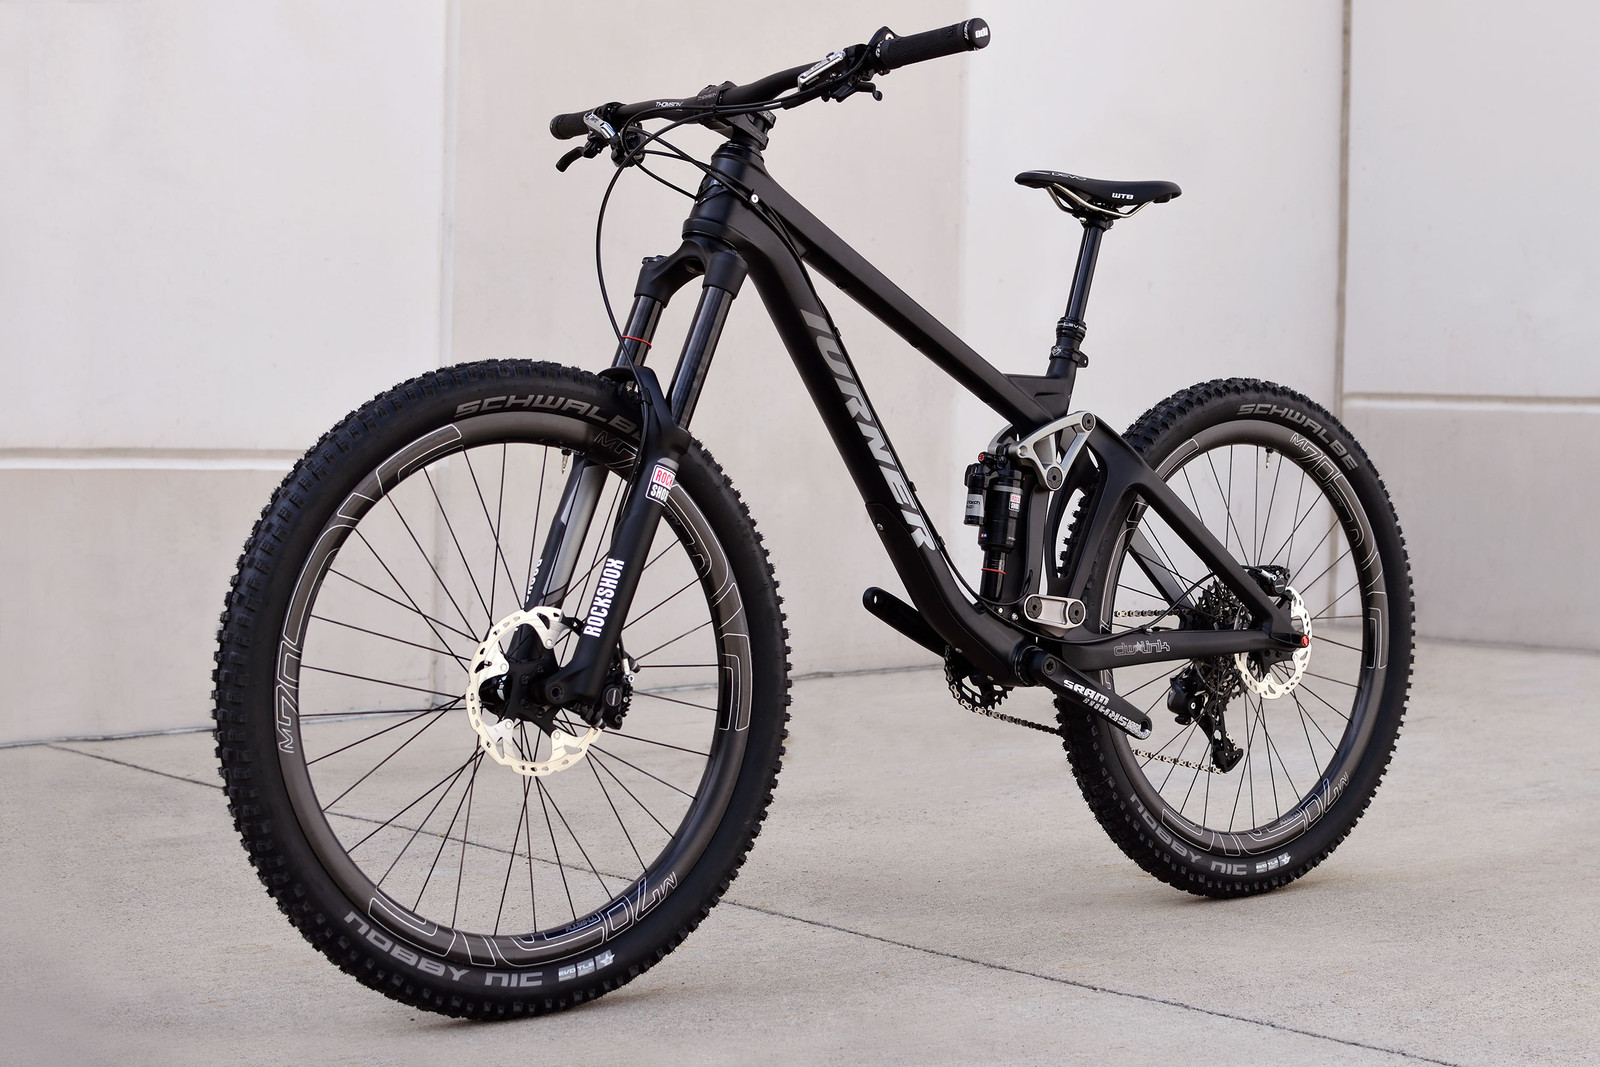 First Look: Turner RFX Ver. 4.0 - Mountain Bikes Feature Stories ...